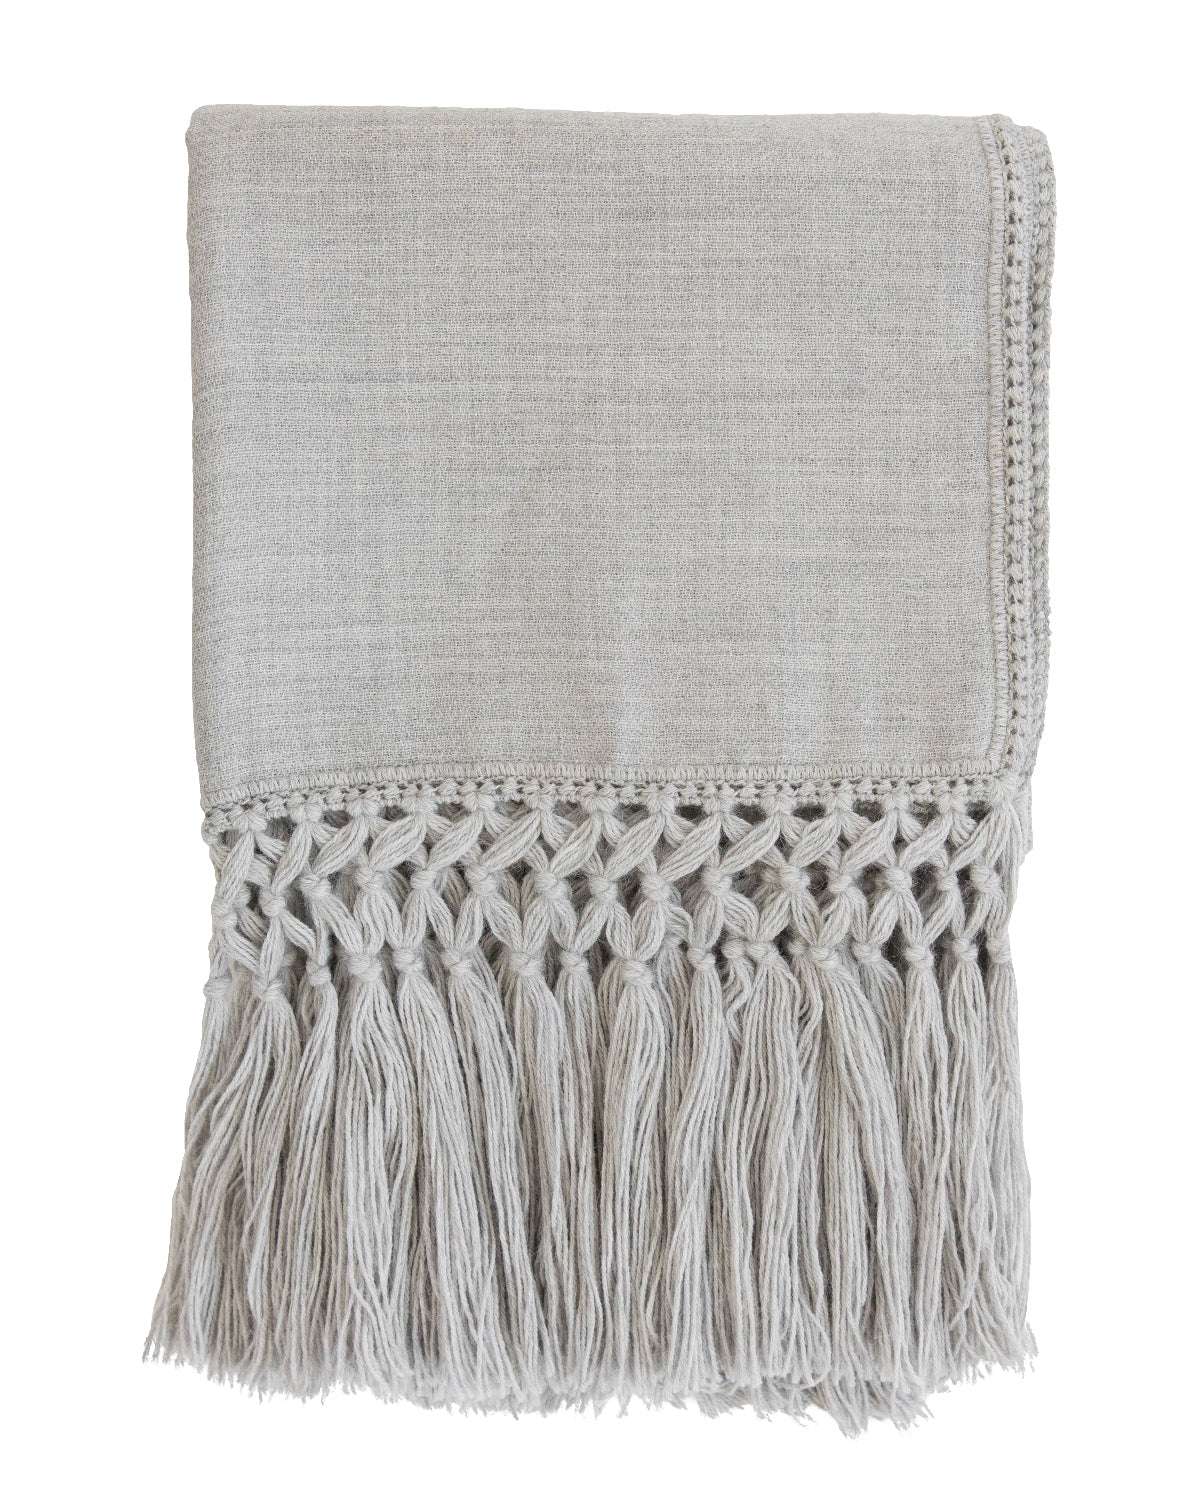 Fringed Alpaca Throw